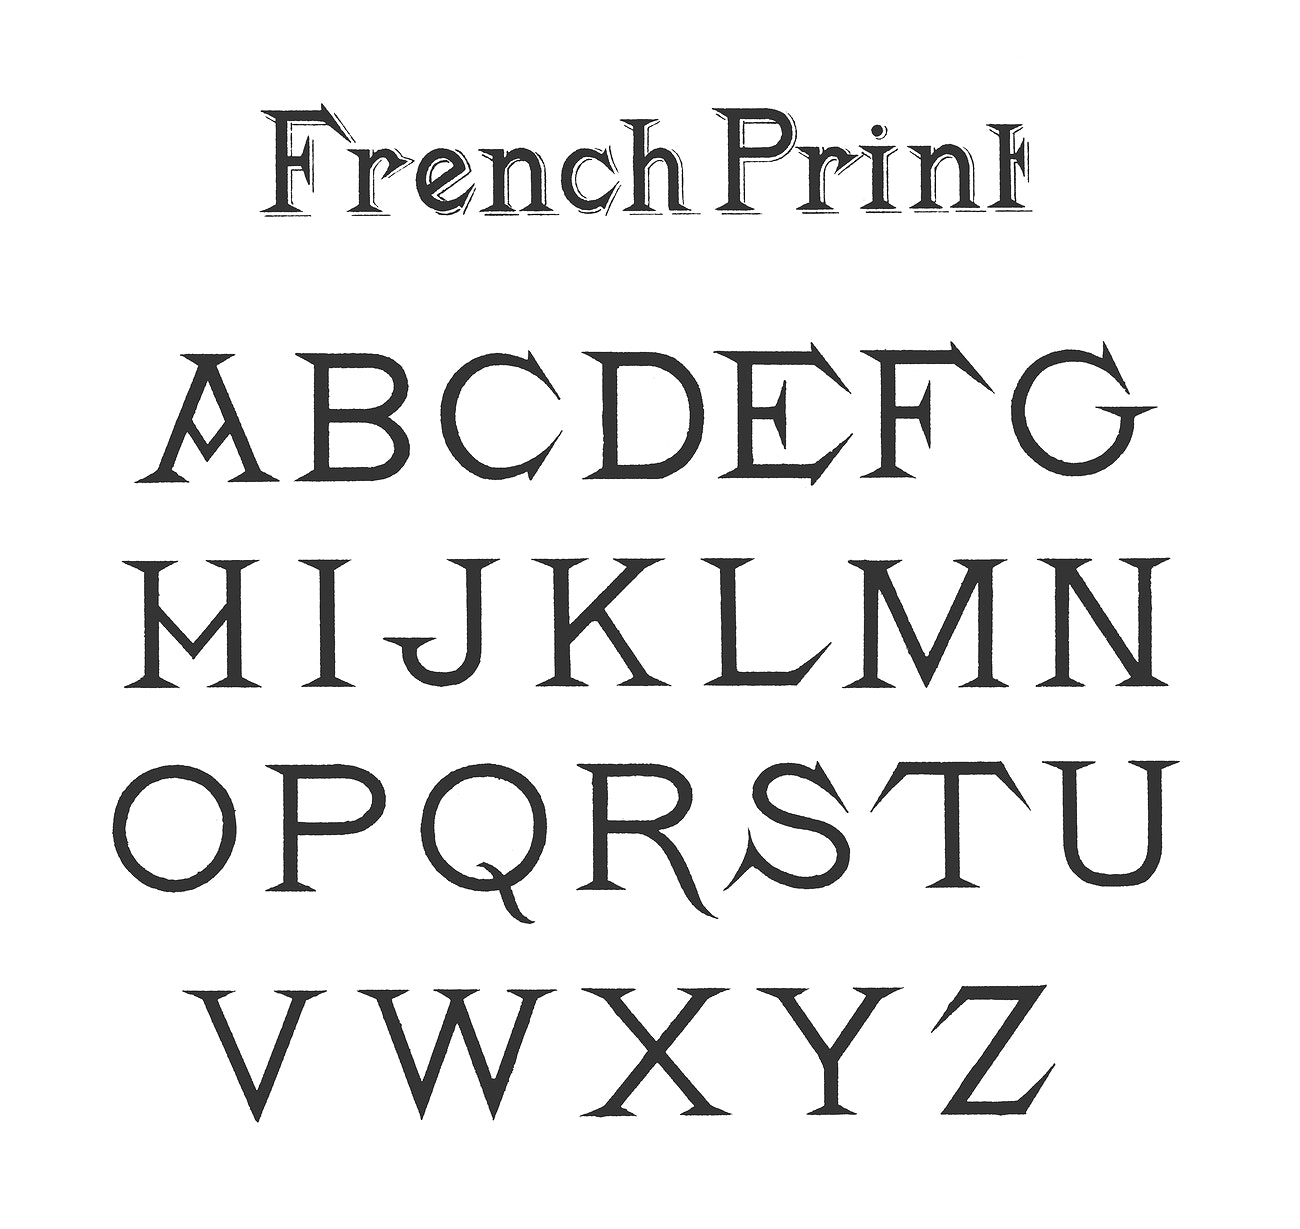 French style fonts from Draughtsman's Alphabets by Hermann